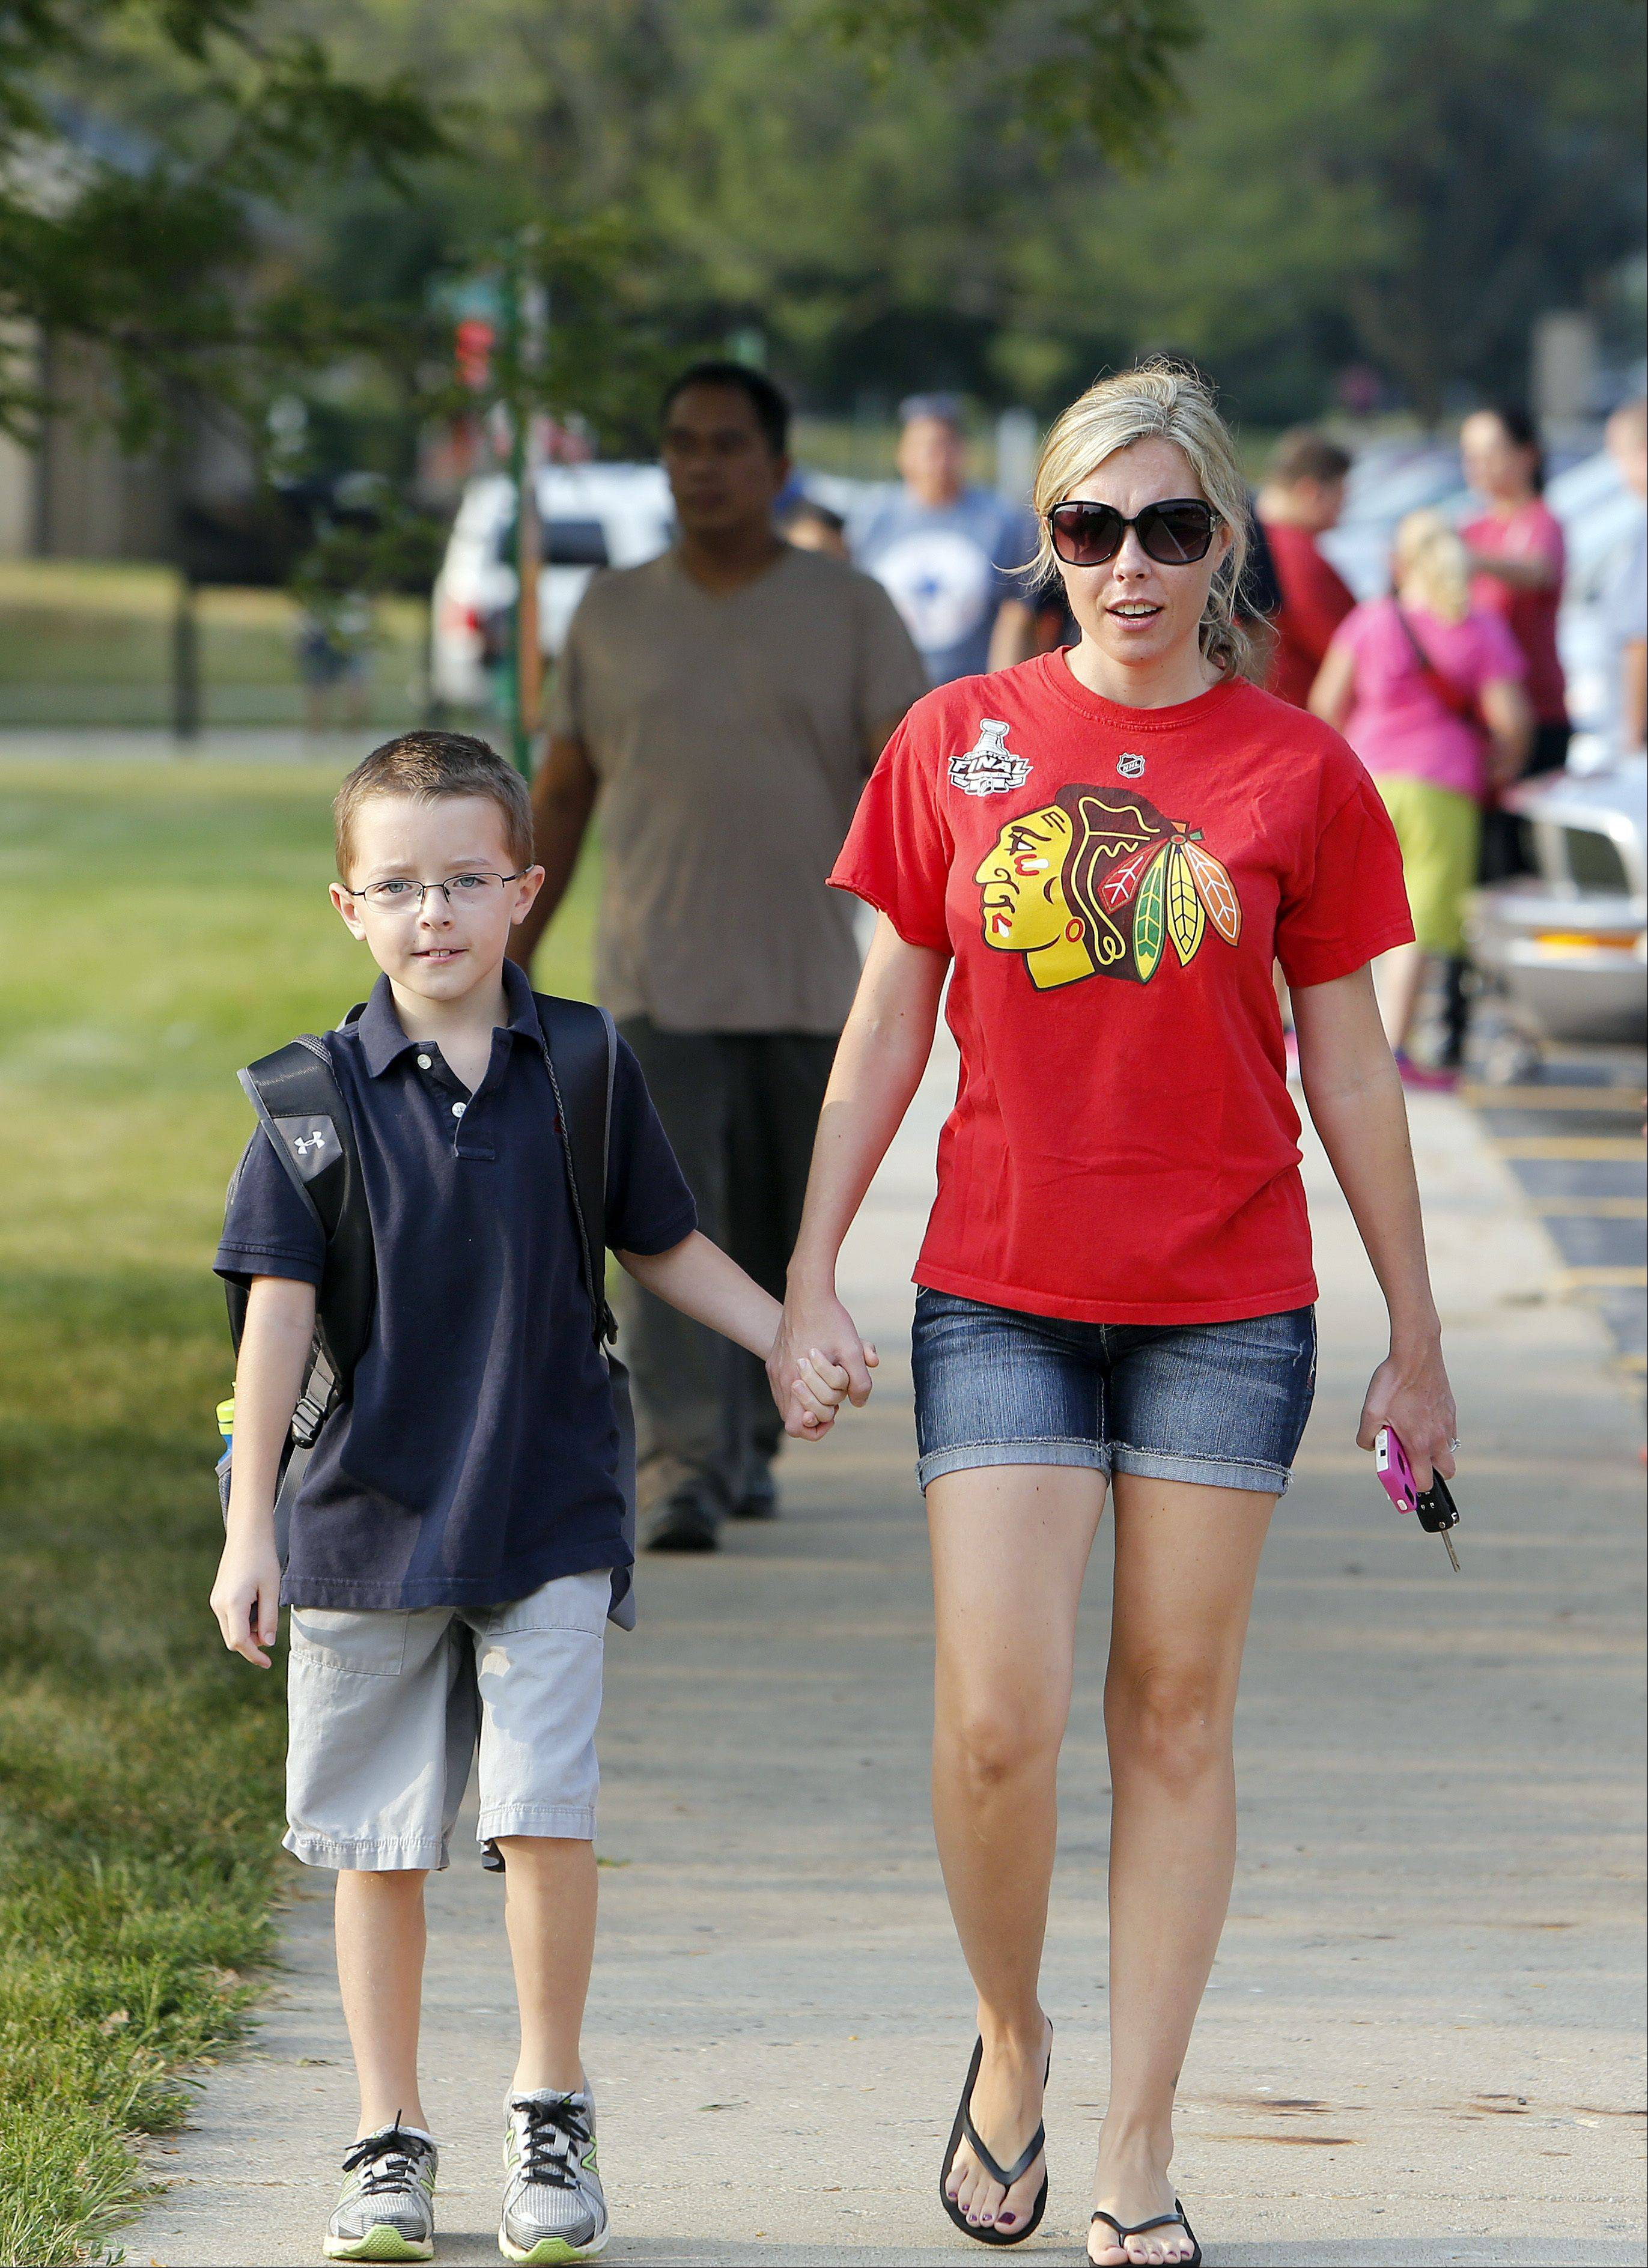 Brian Hill/bhill@dailyherald.comJack Murphy, 8, walks with his mom Ashley on the way to the first day of school and third grade at Richmond Intermediate School in St. Charles Wednesday.